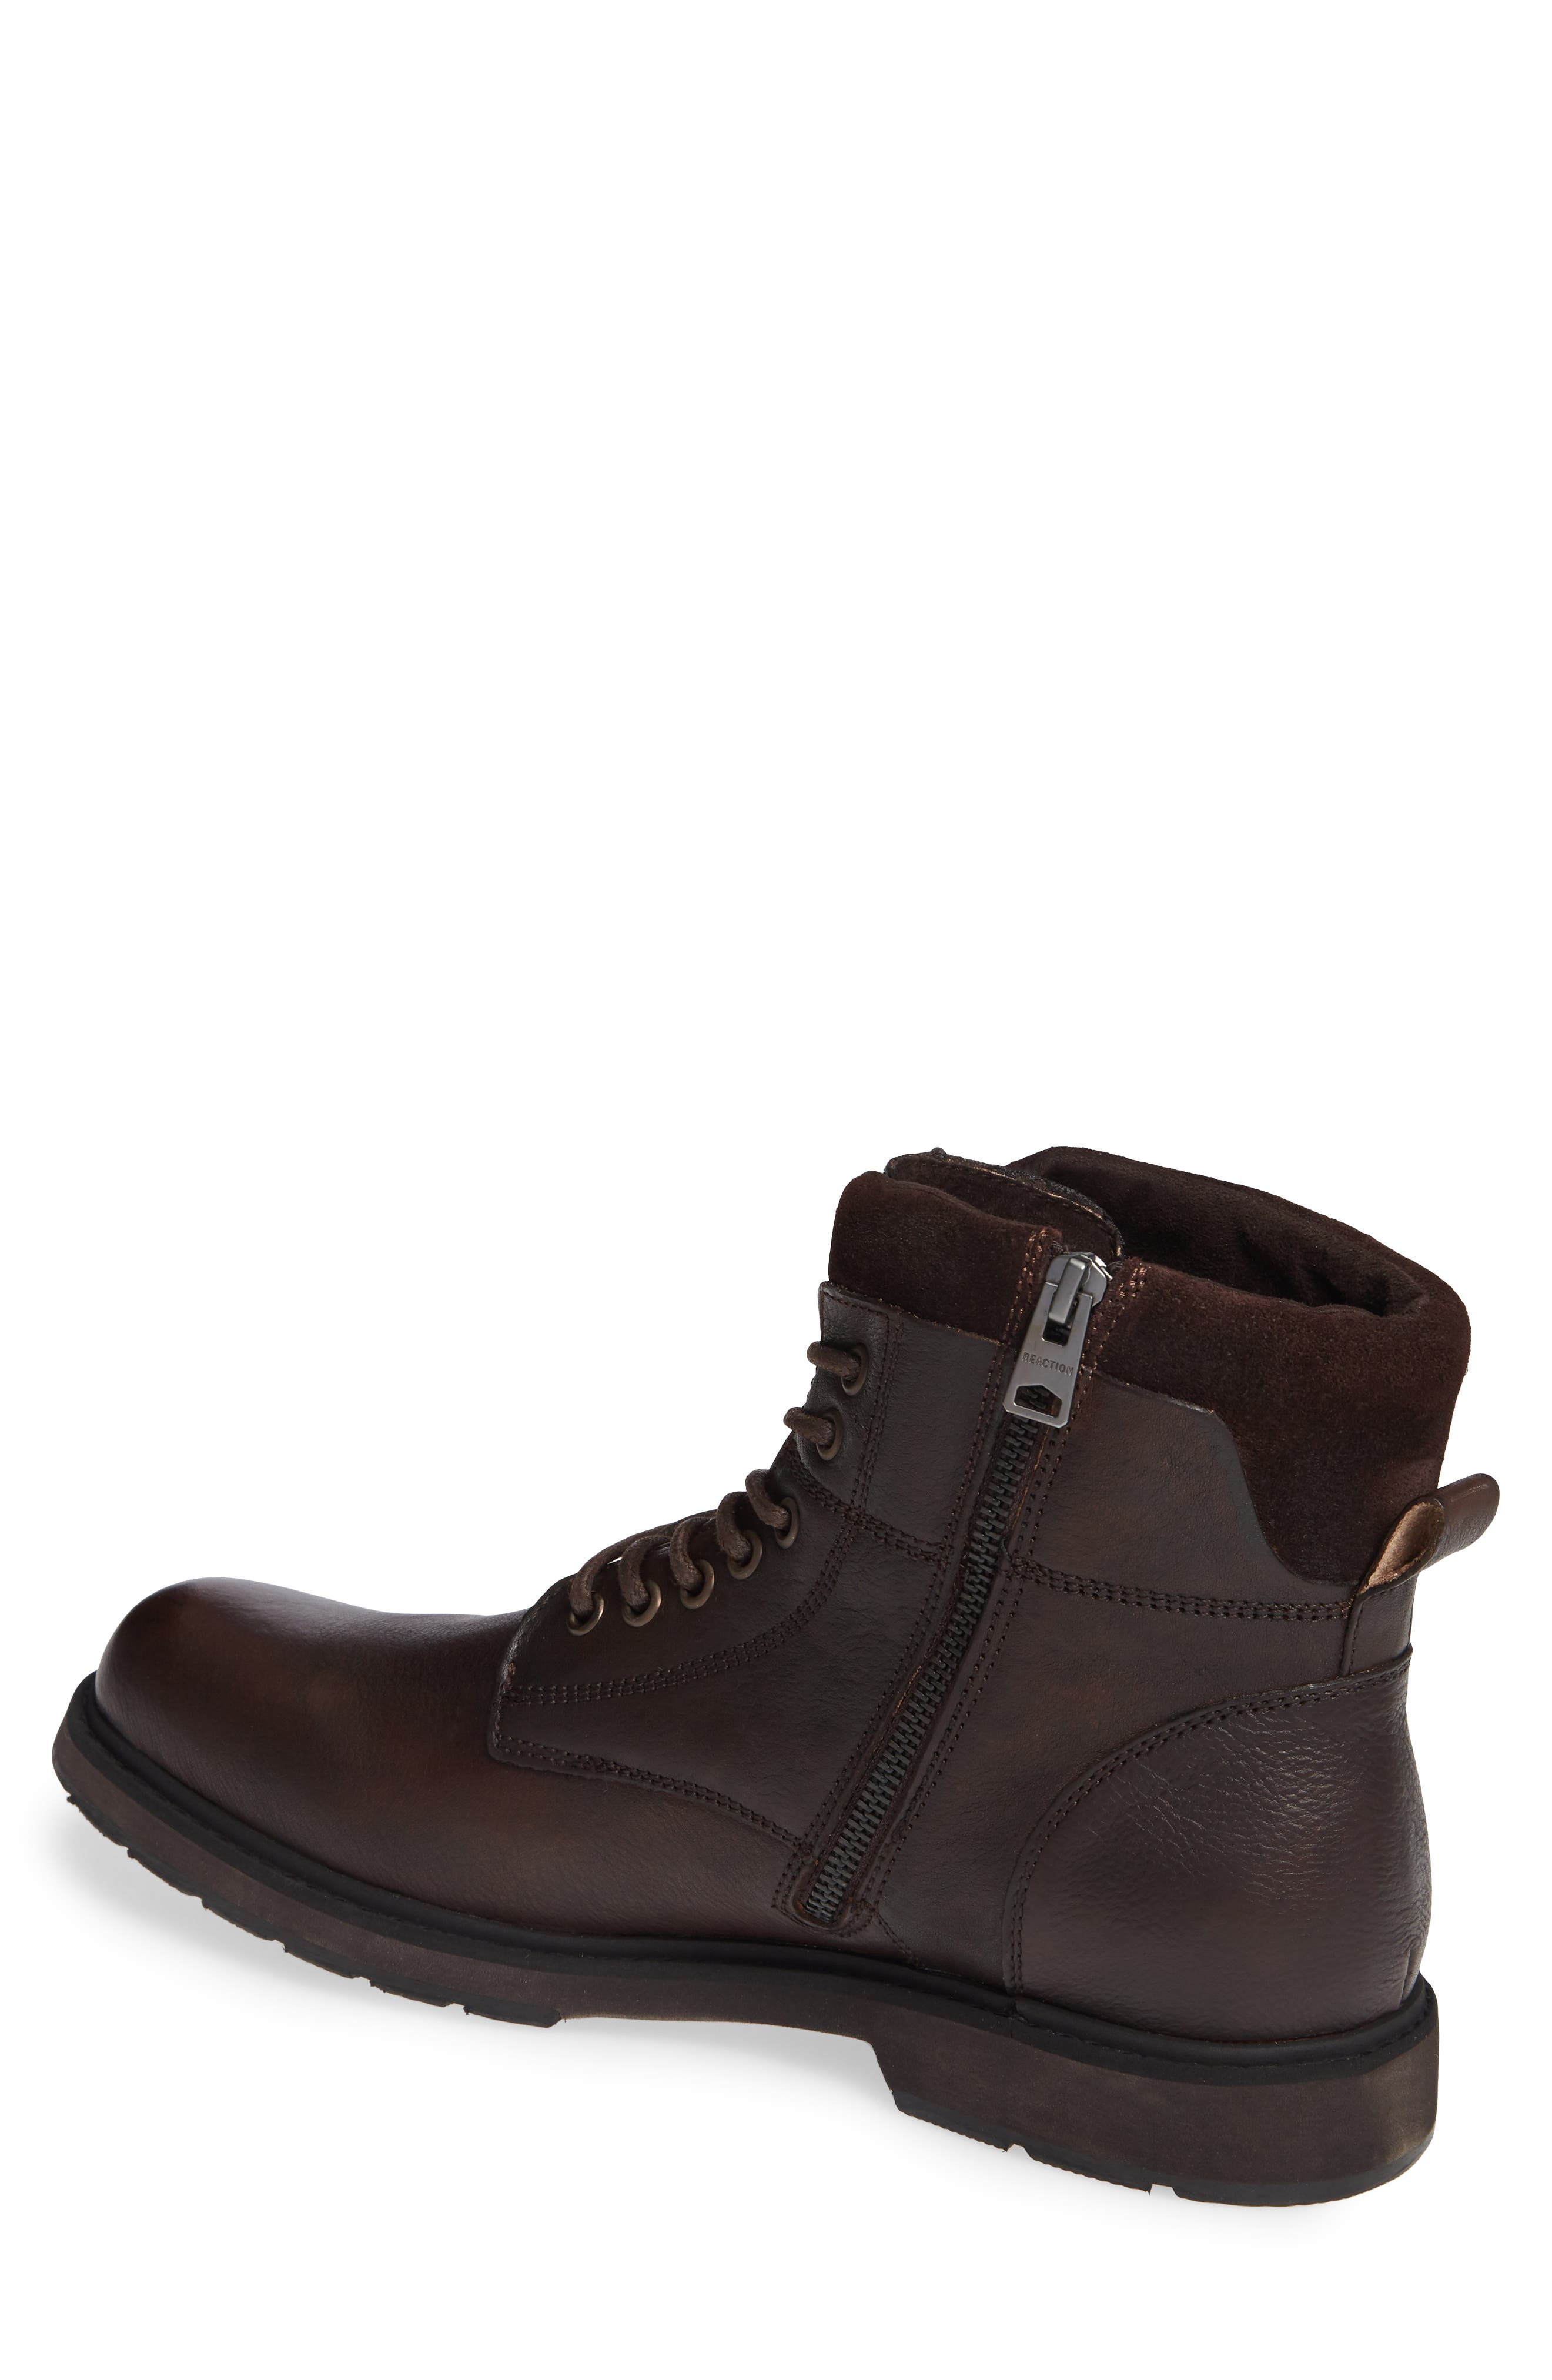 REACTION KENNETH COLE, Drue Pebbled Combat Boot, Alternate thumbnail 2, color, BROWN LEATHER